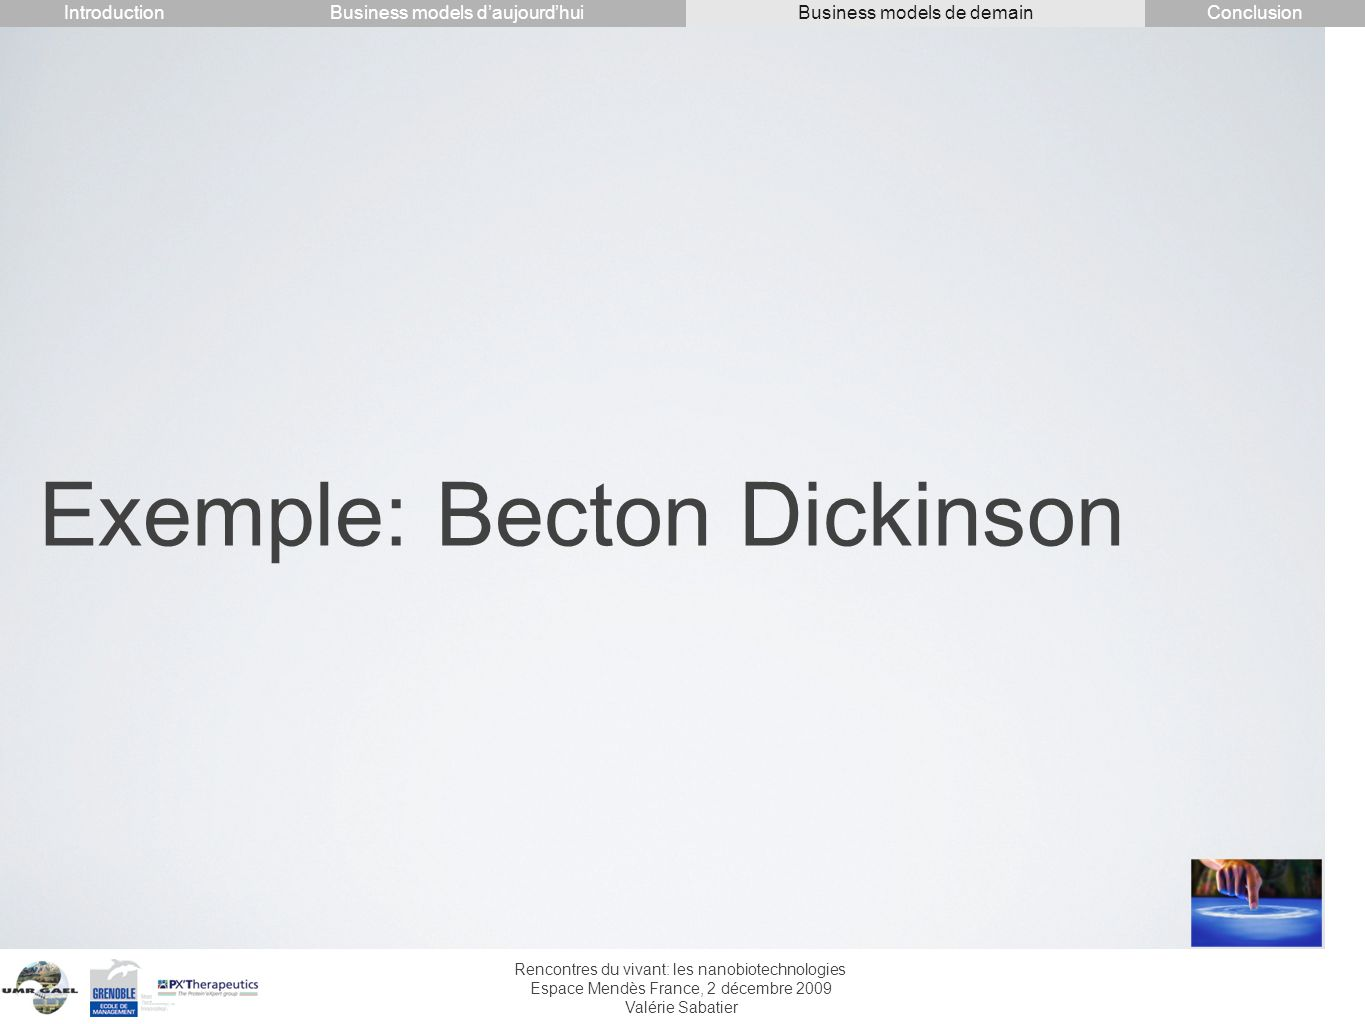 Exemple: Becton Dickinson